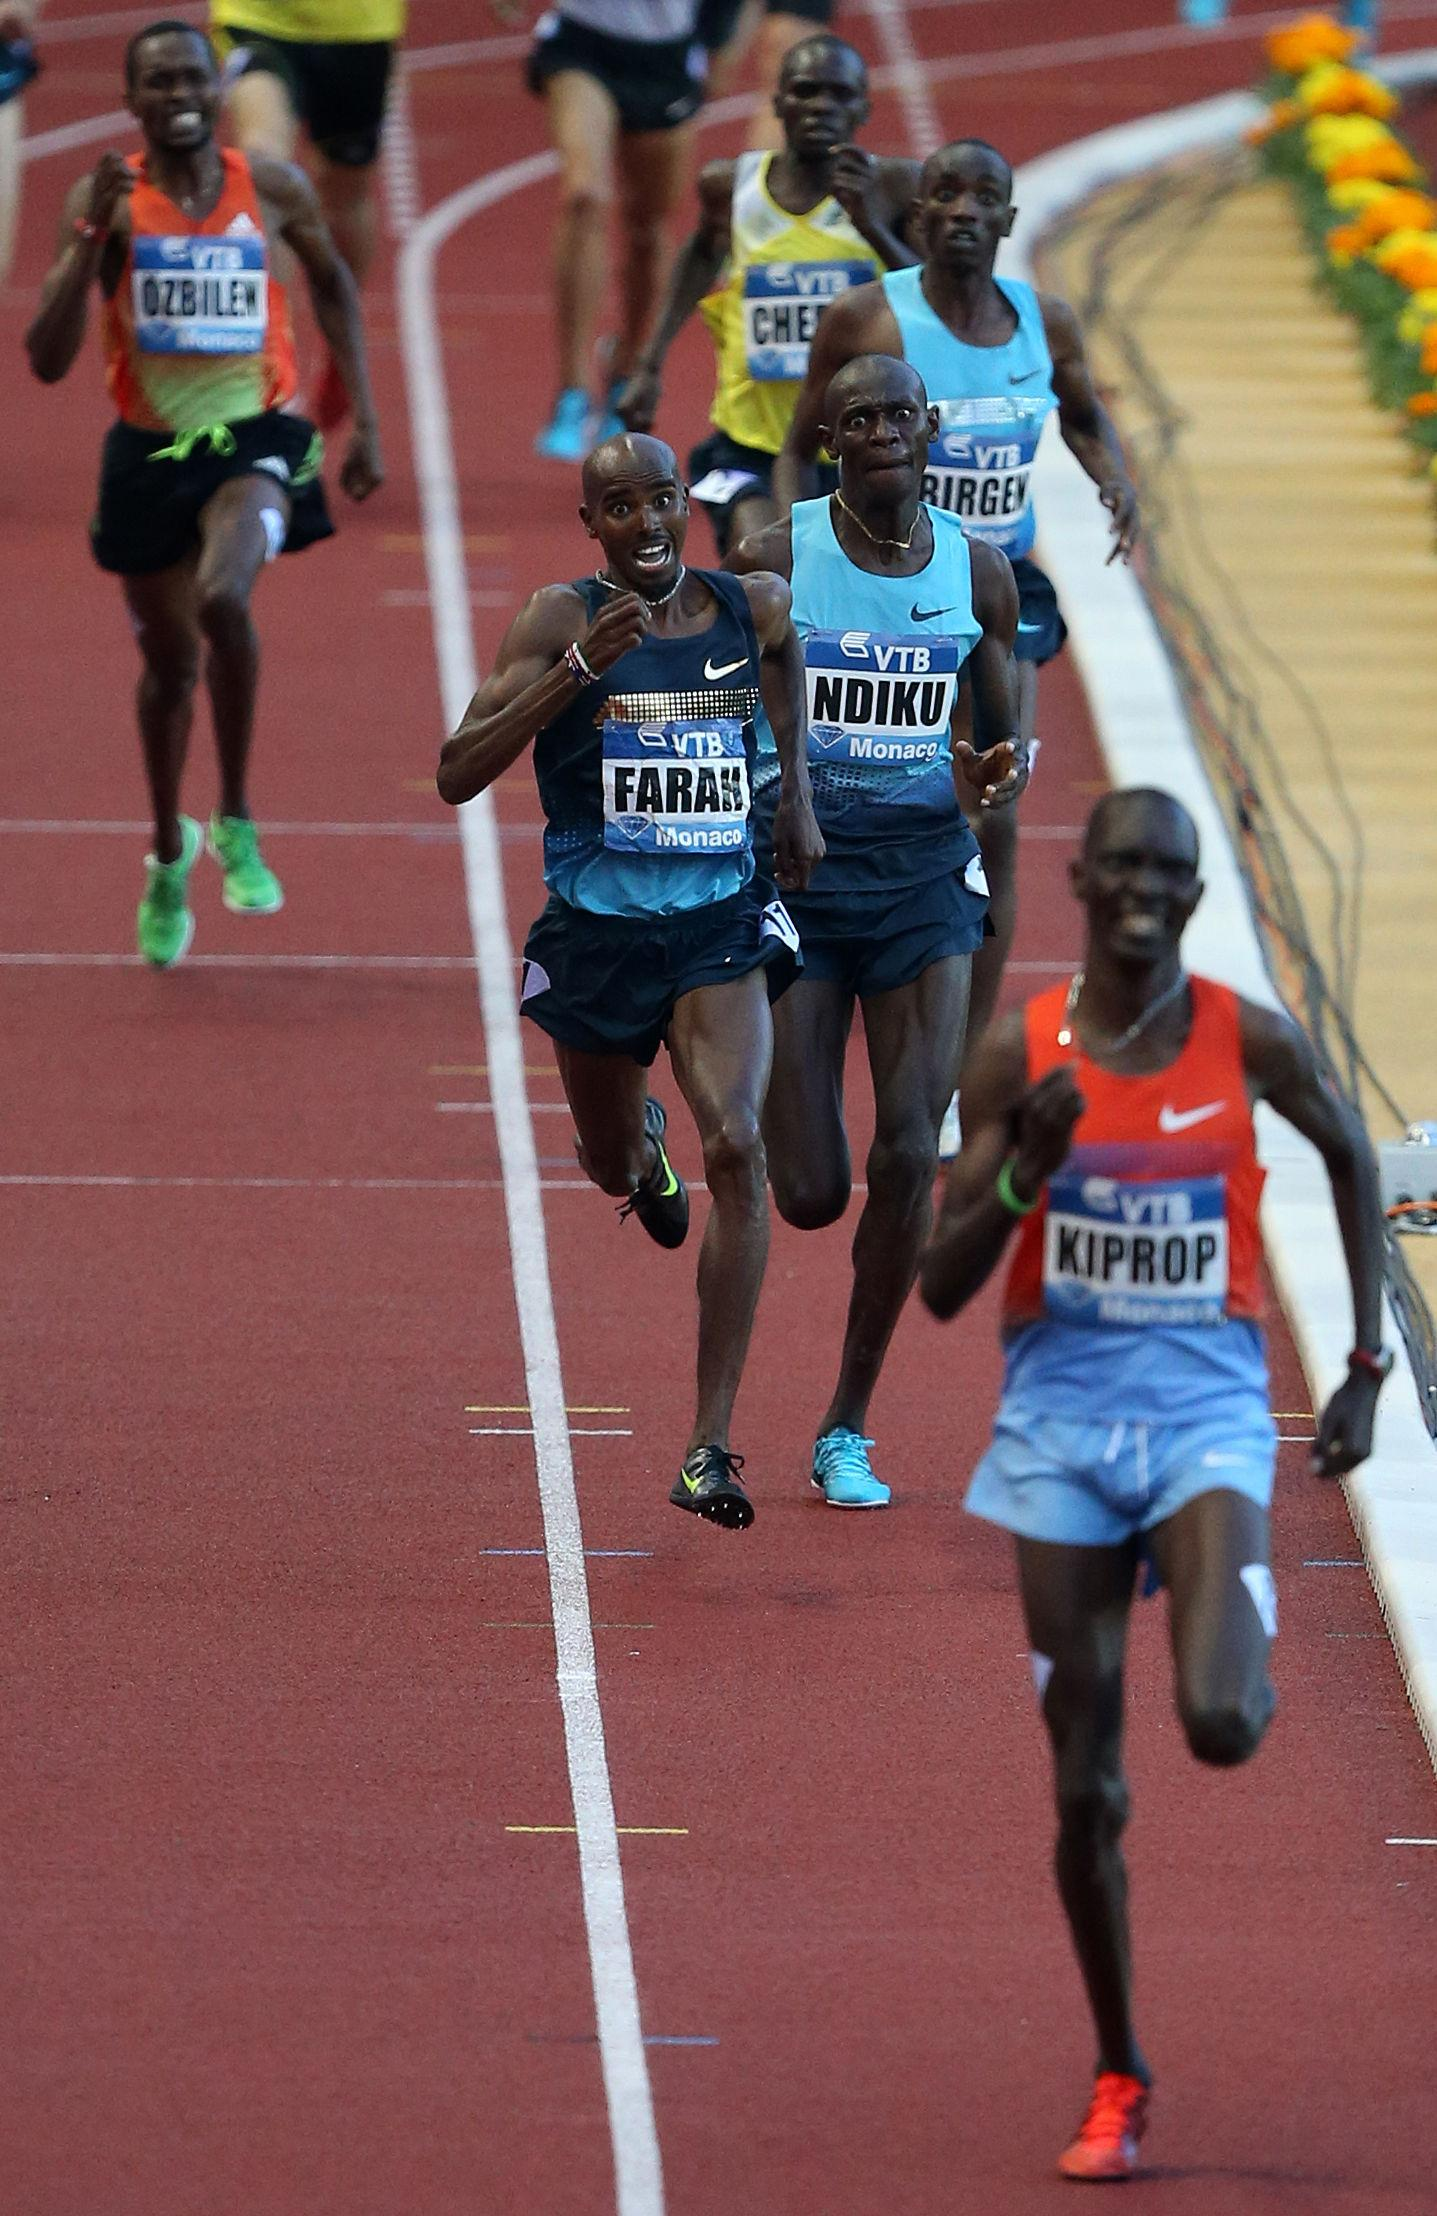 Mo Farah has previously questioned the legitimacy of his1500m win three years ago